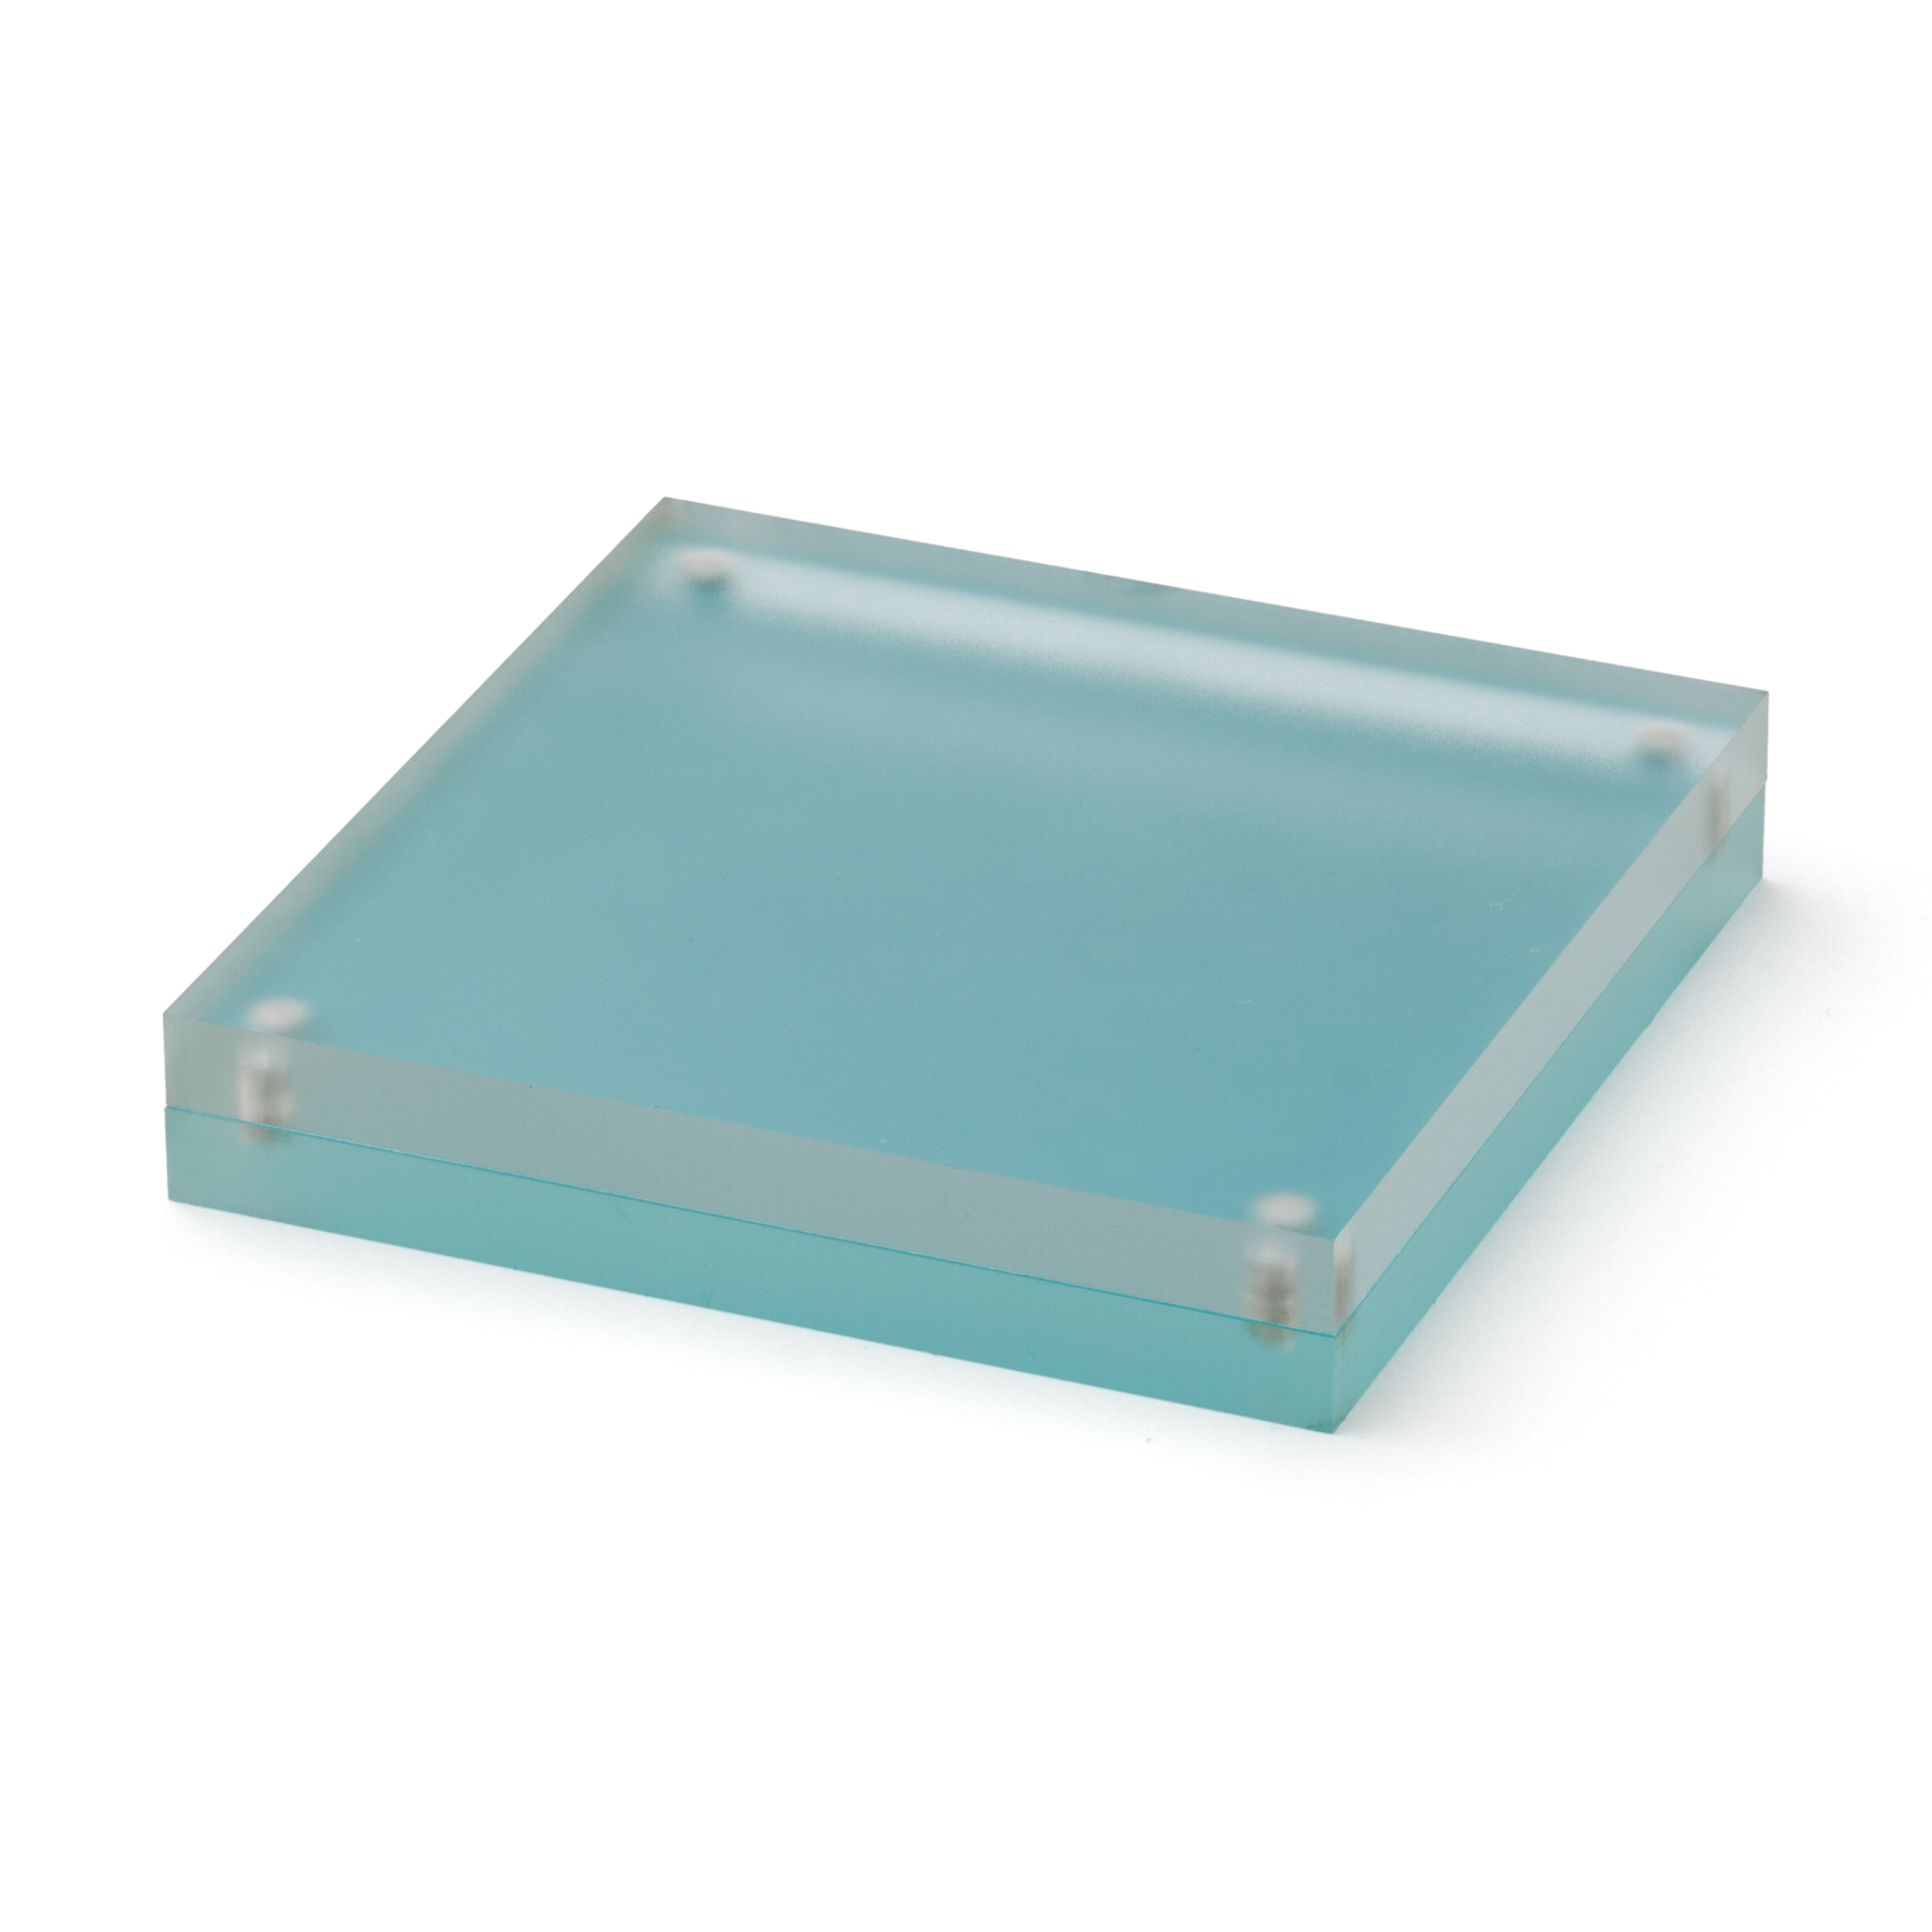 MAGNETIC DISPLAY small mat